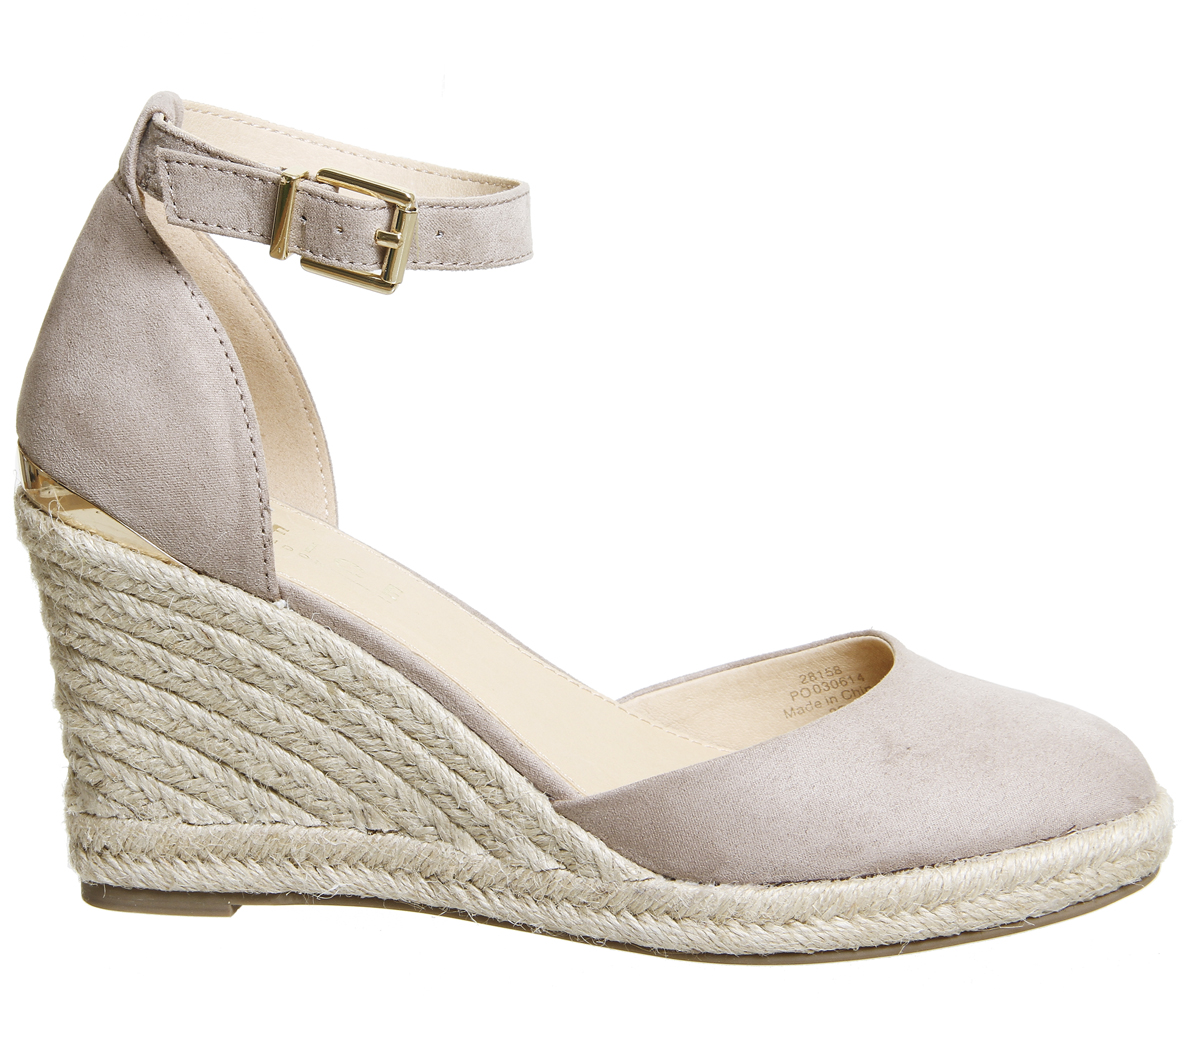 6fbef9b4f03 Details about Womens Office Marsha Closed Toe Espadrille Wedges Taupe With  Gold Heel Clip Heel